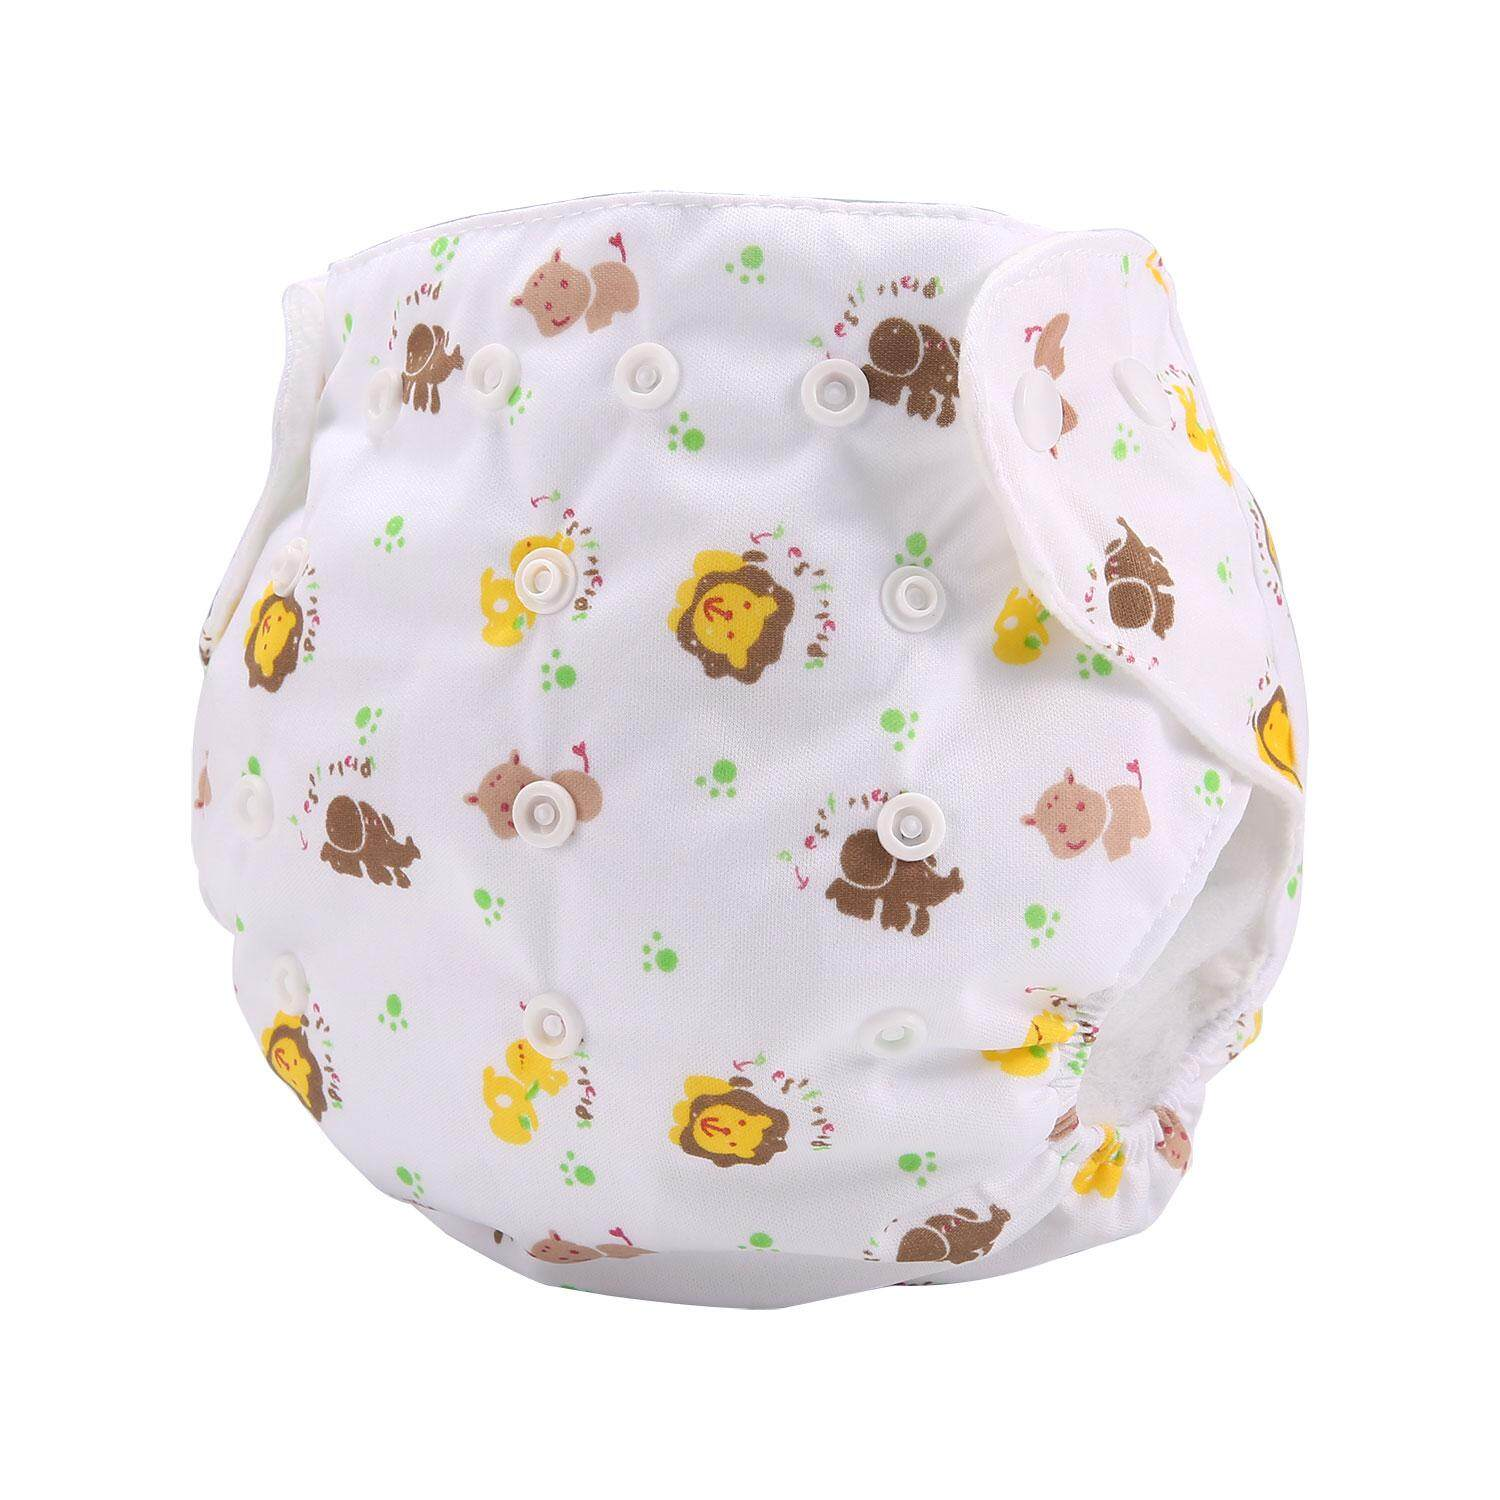 Baby fashion Adult diaper cover